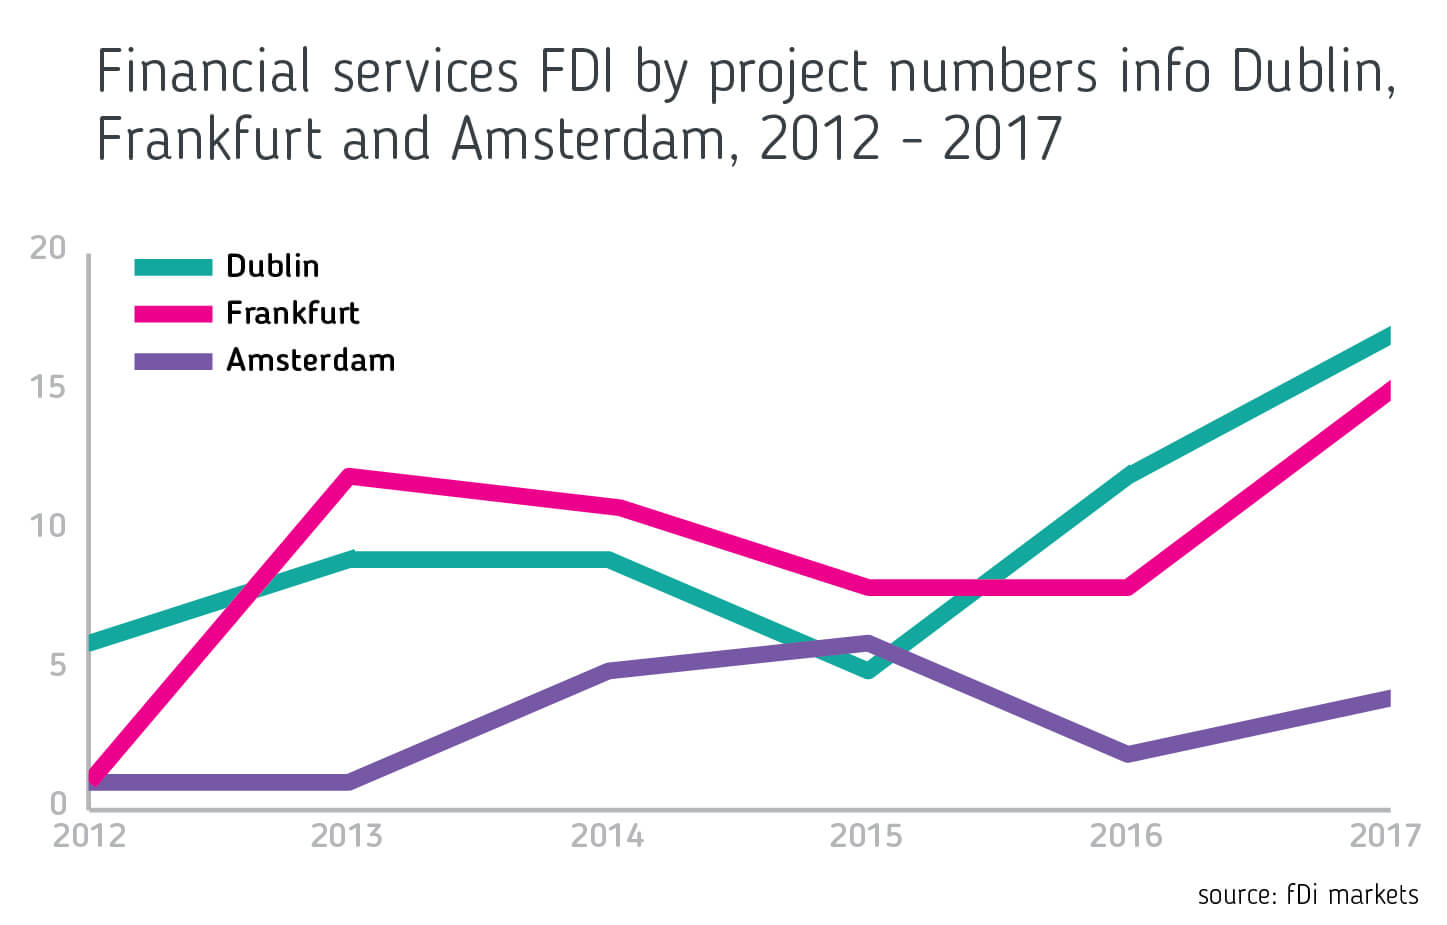 Graph displaying financial services FDI by project numbers for Dublin, Frankfurt & Amsterdam